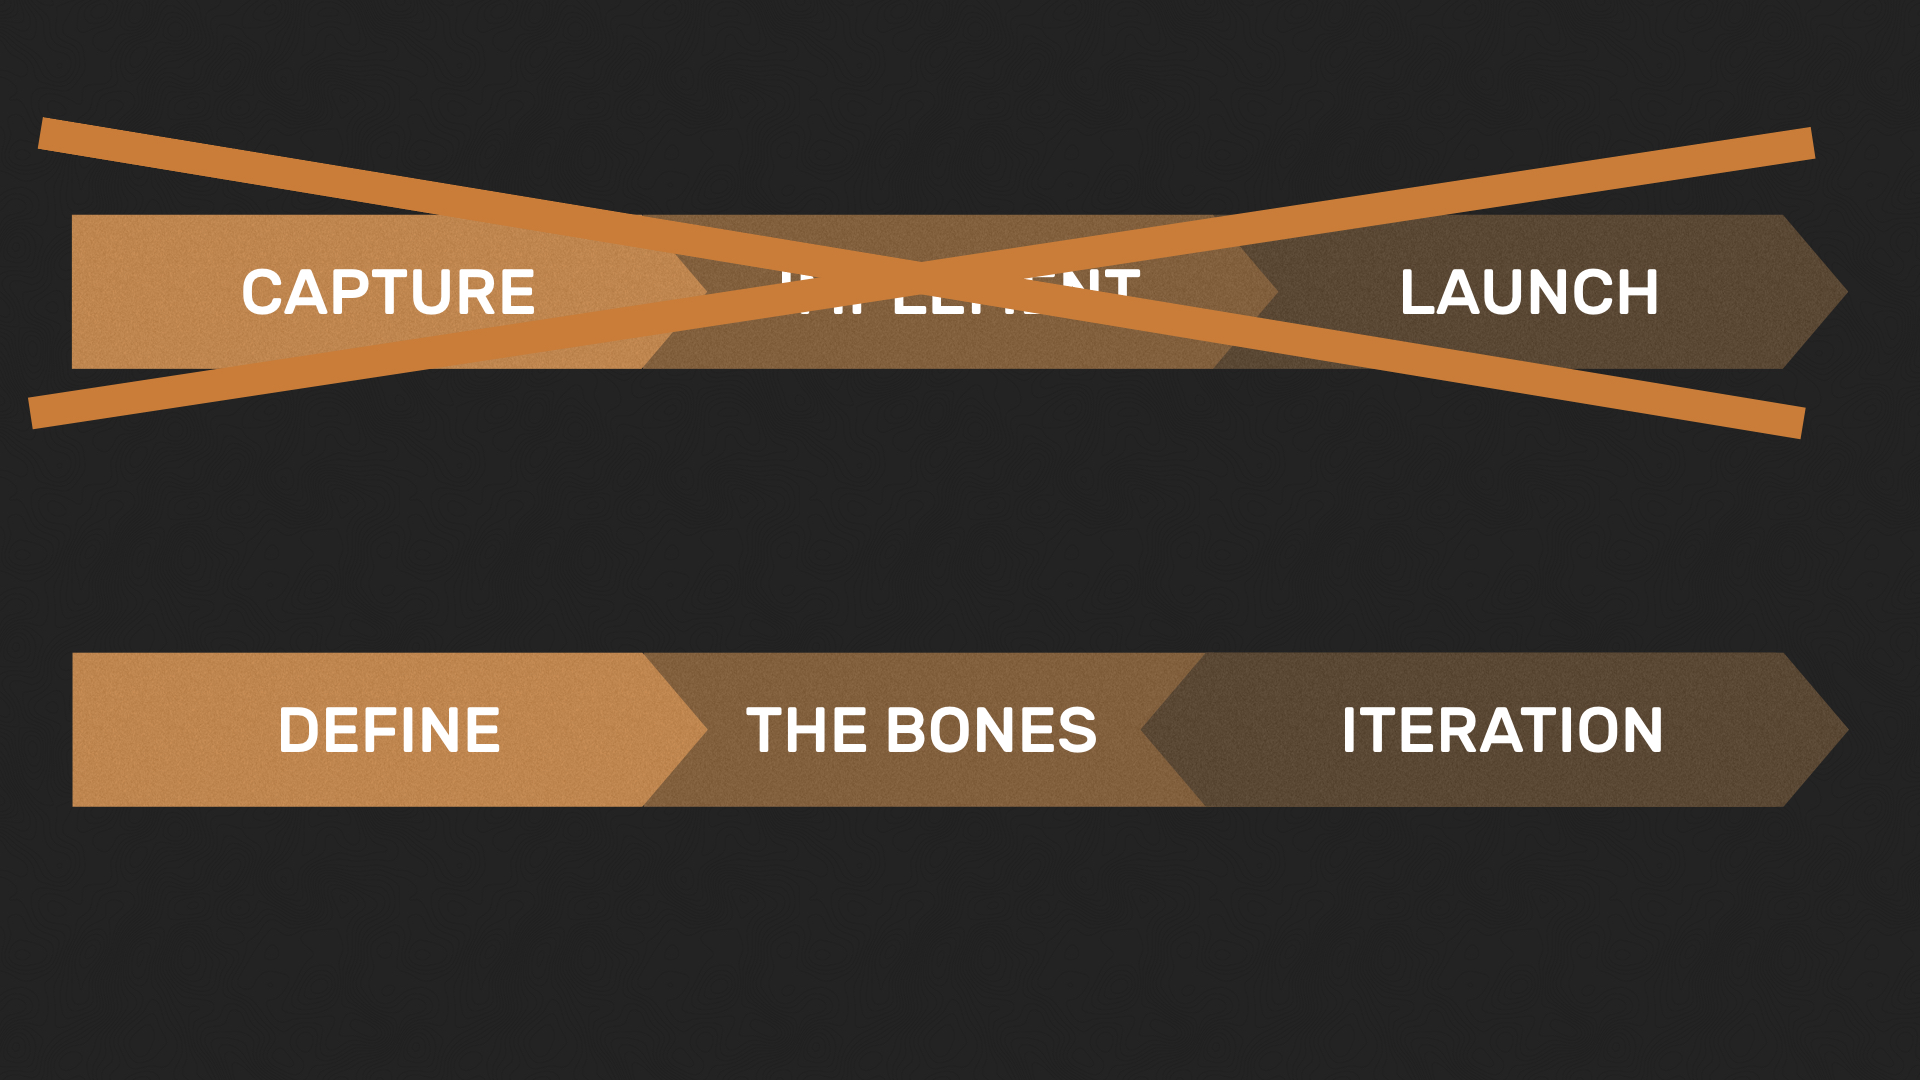 David Hobbs' graphic about The Bones.